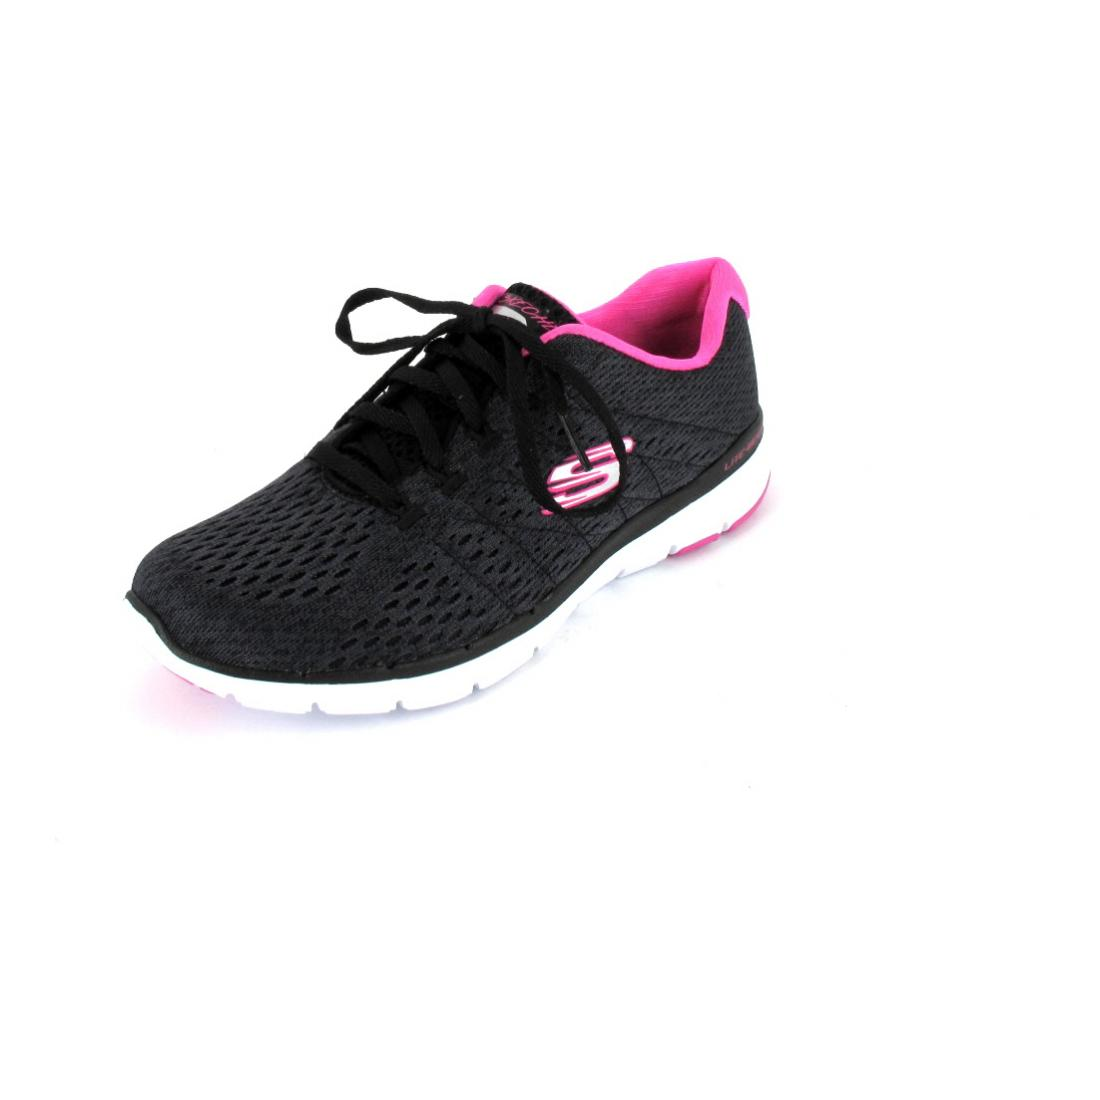 Skechers Sneaker FLEX APPEAL 3.0 SATELITE